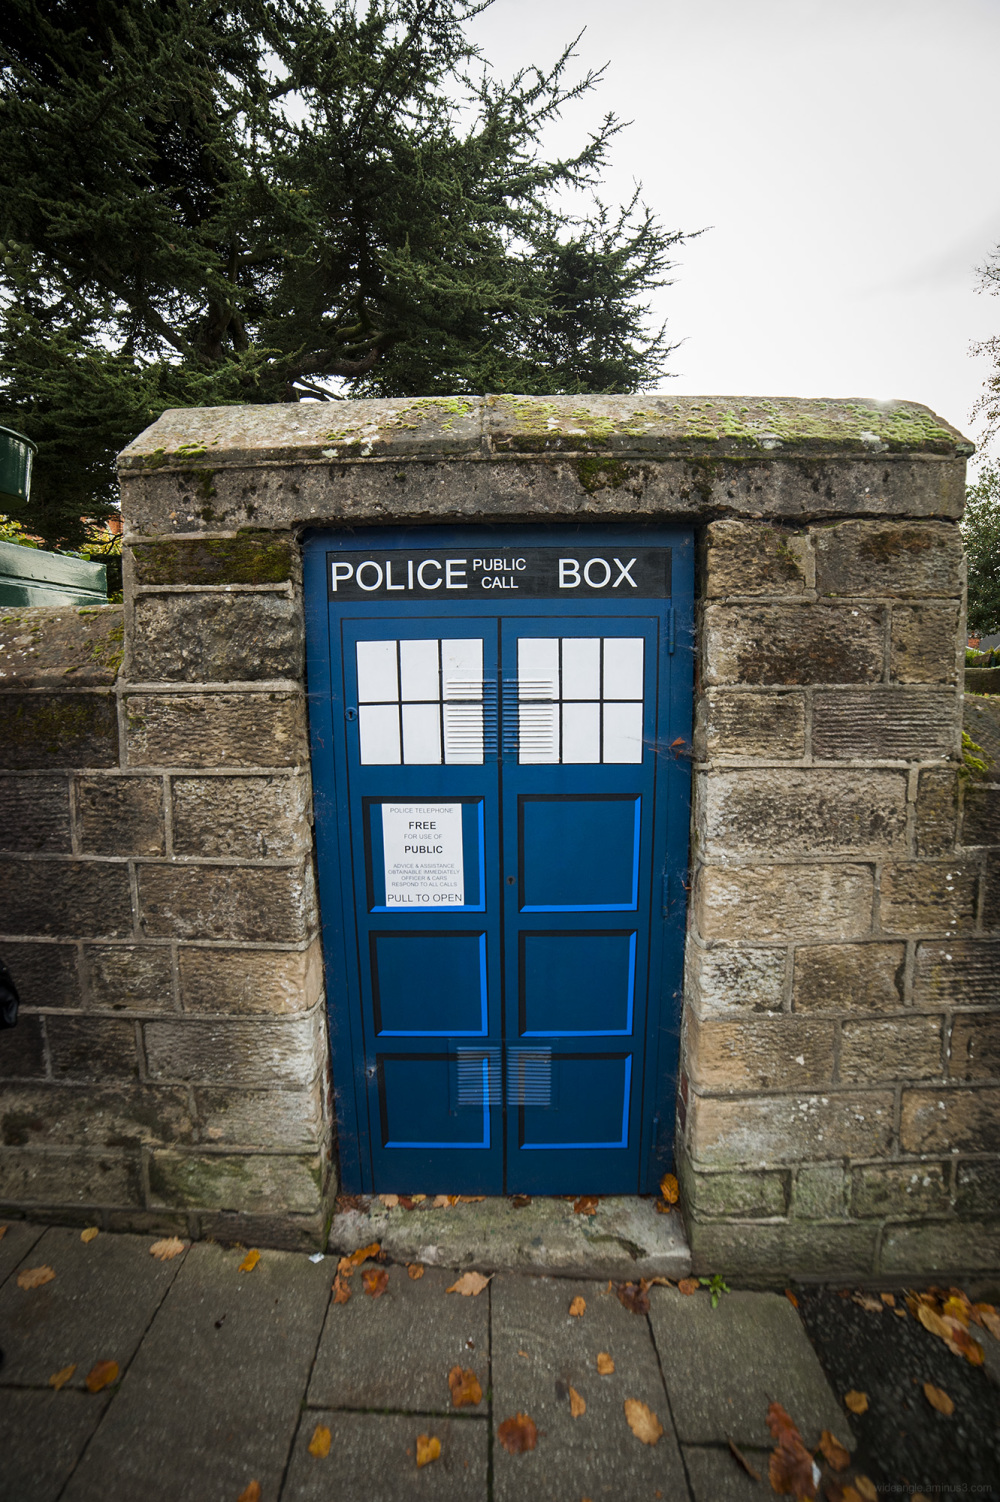 tardis belper arts high street